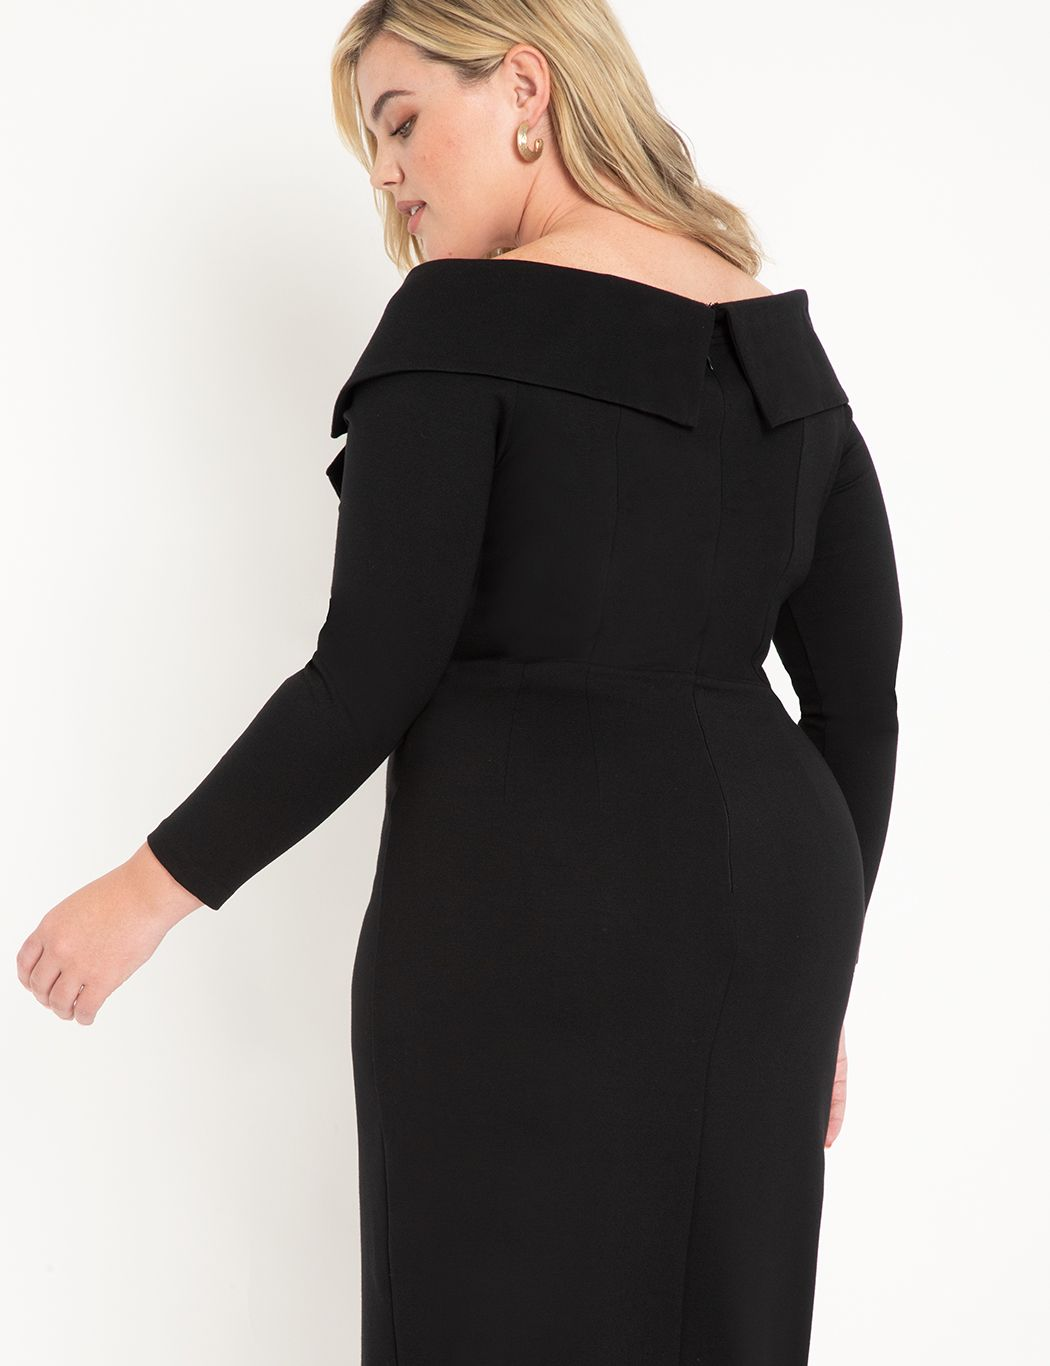 Portrait Neckline Collared Dress